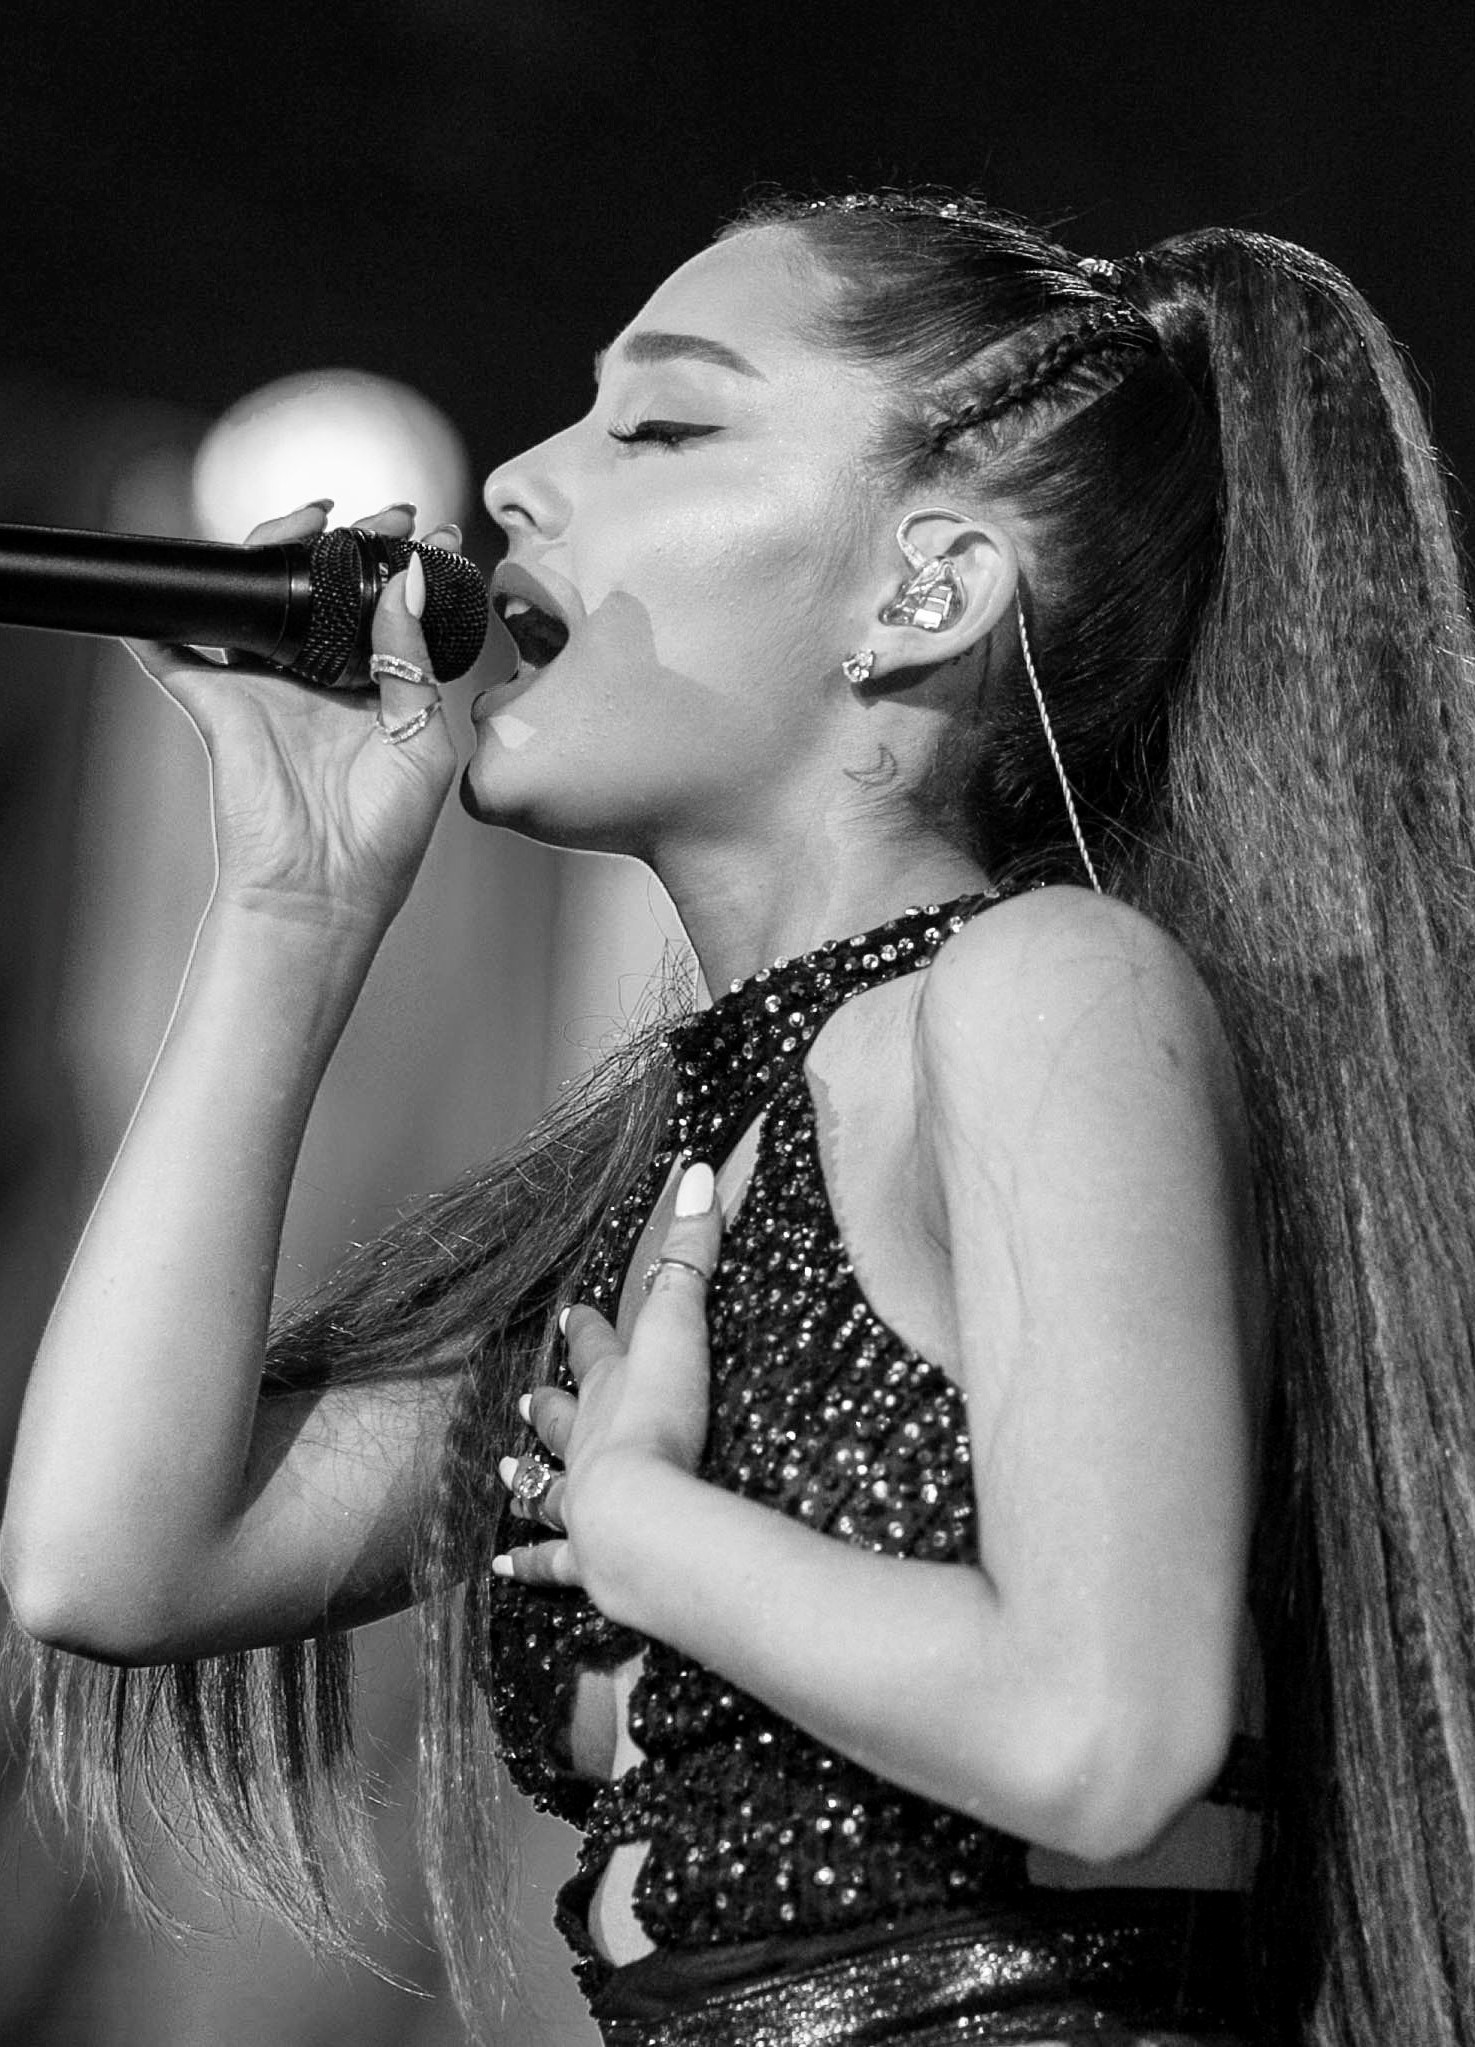 LOS ANGELES, CA - JUNE 02:  (Editors note: Image has been conveted to black and white.) (EDITORIAL USE ONLY. NO COMMERCIAL USE) Ariana Grande performs onstage during the 2018 iHeartRadio Wango Tango by AT&T at Banc of California Stadium on June 2, 2018 in Los Angeles, California.  (Photo by Rich Polk/Getty Images for iHeartMedia )